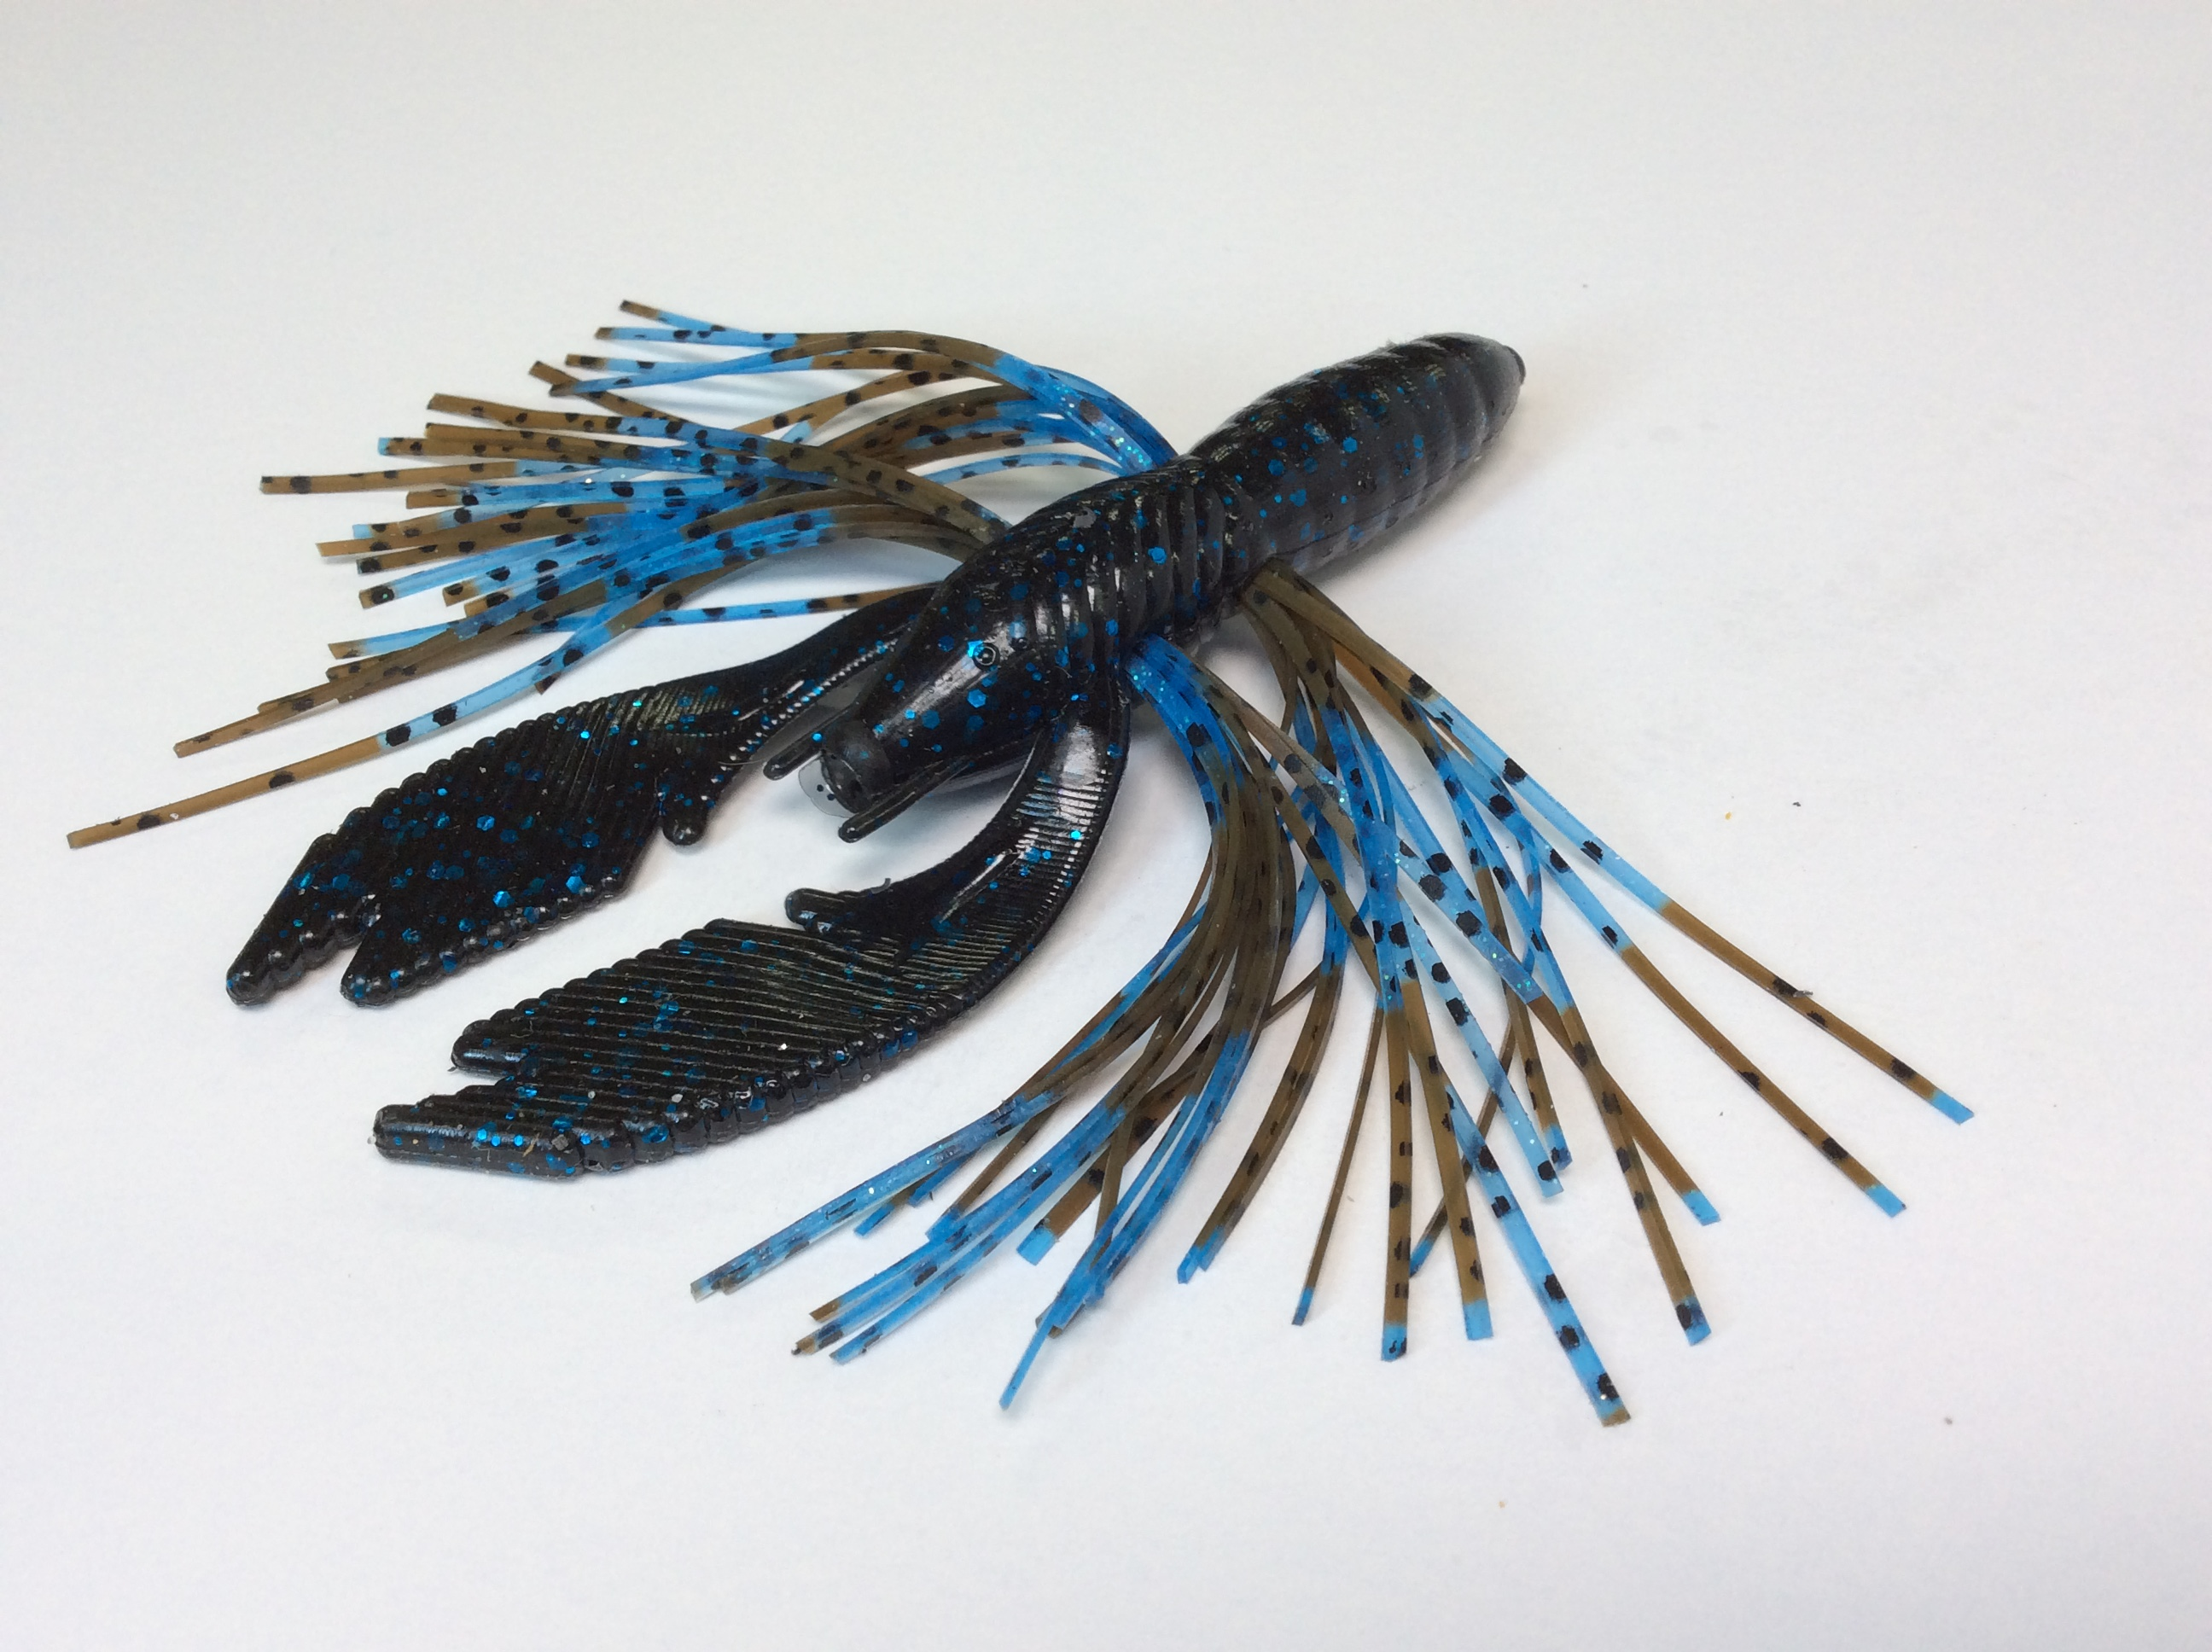 Midnight Blue with Okeechobee Craw